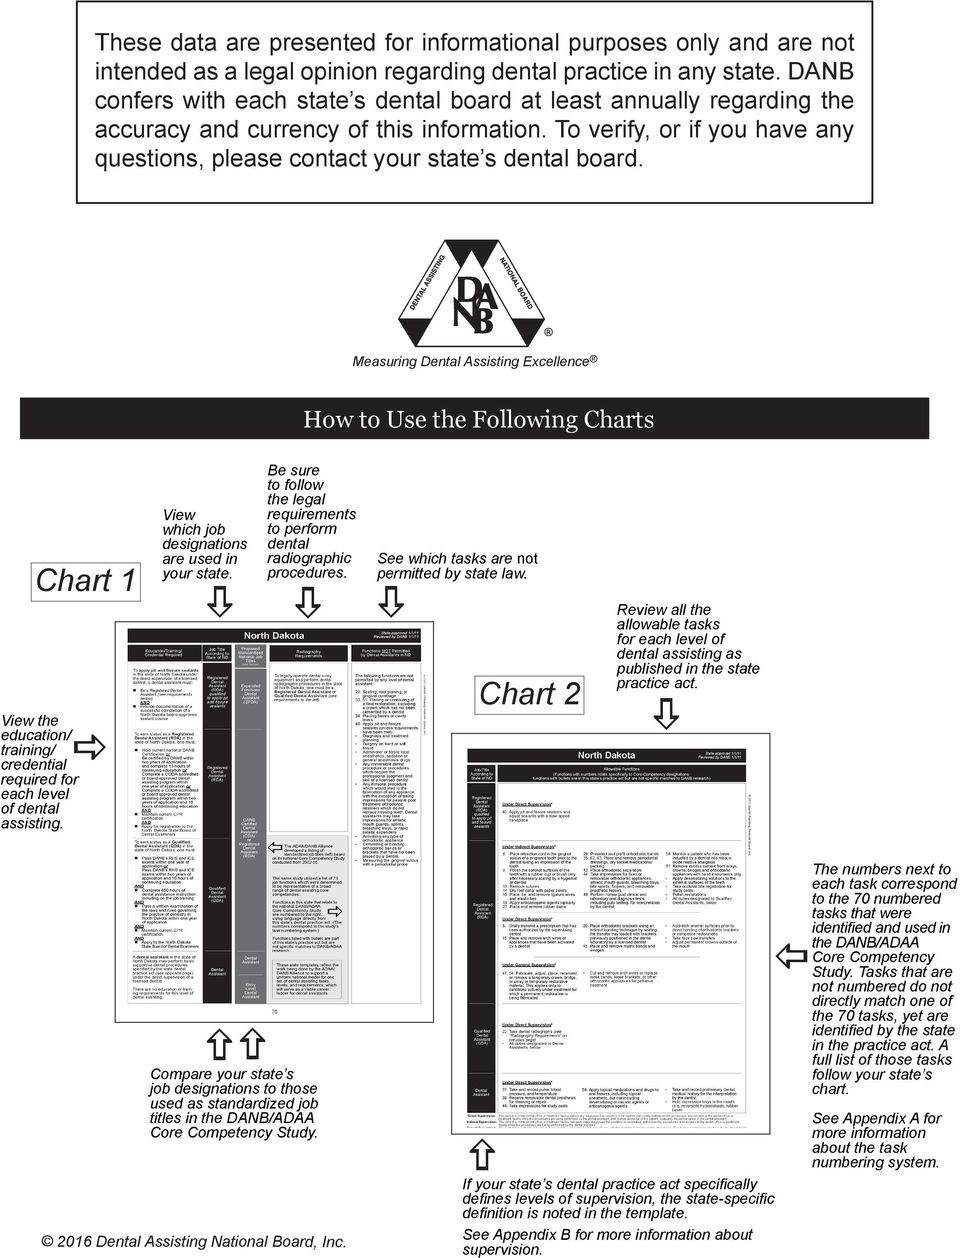 Measuring Assisting Excellence How to Use the Following Charts Chart 1 View the education/ training/ credential required for each level of dental assisting.